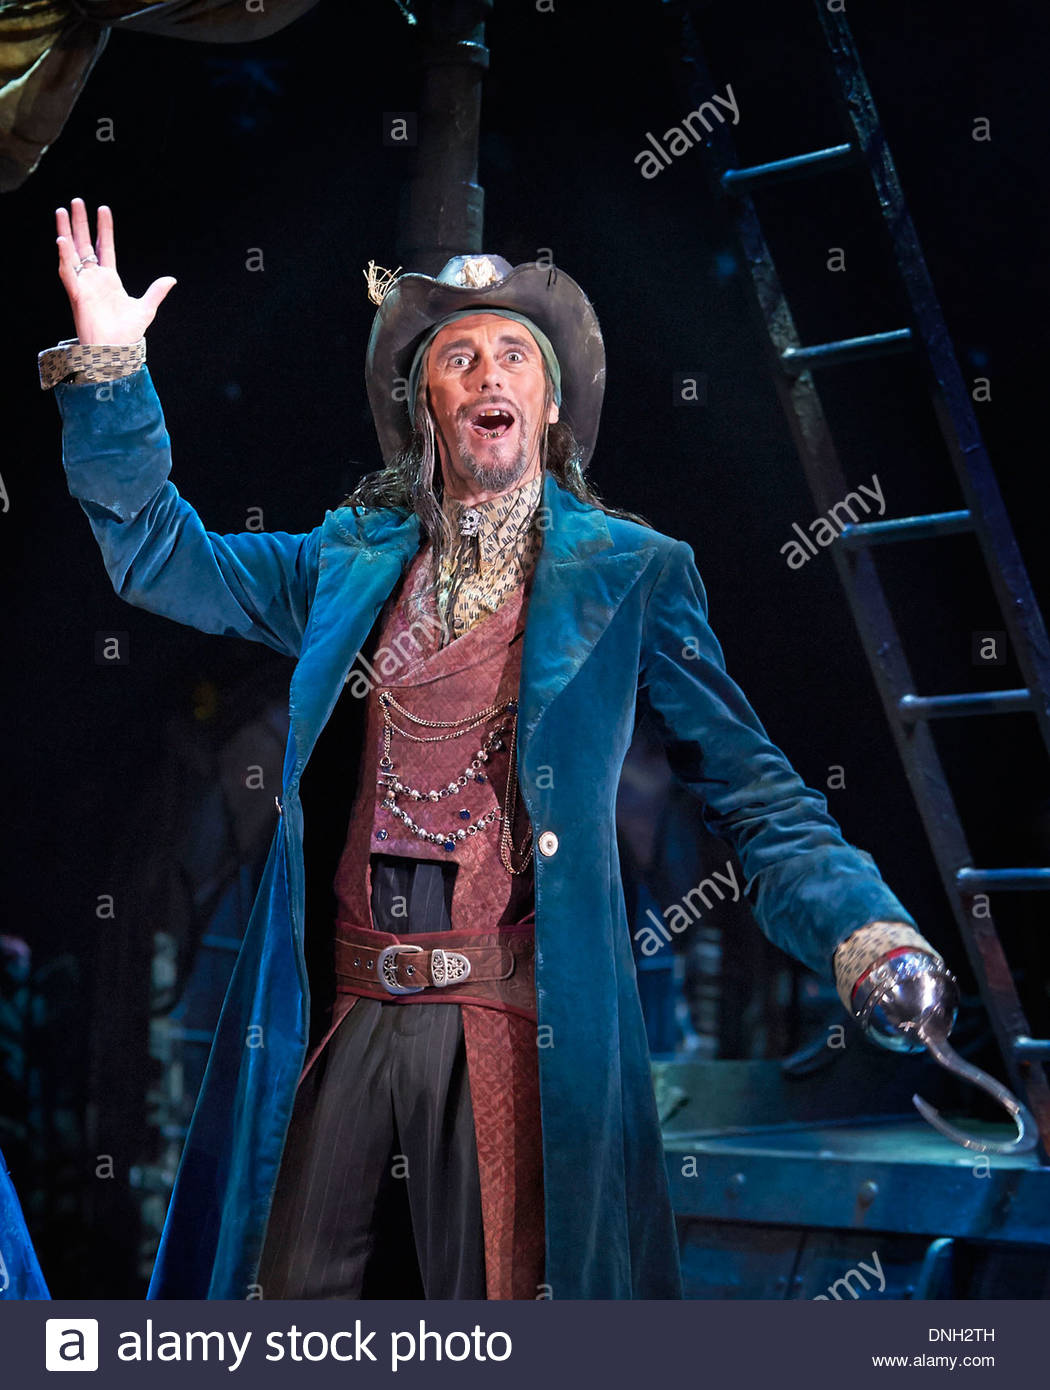 Wendy and Peter Pan by Ella Hickson, adapted from the novel by J M Barrie. A Royal Shakespeare Company Production directed by Jonathan Mundy. With Guy Henry as Hook. Opens at The Royal Shakespeare Theatre , Stratford Upon Avon on 18/12/13 - Stock Image